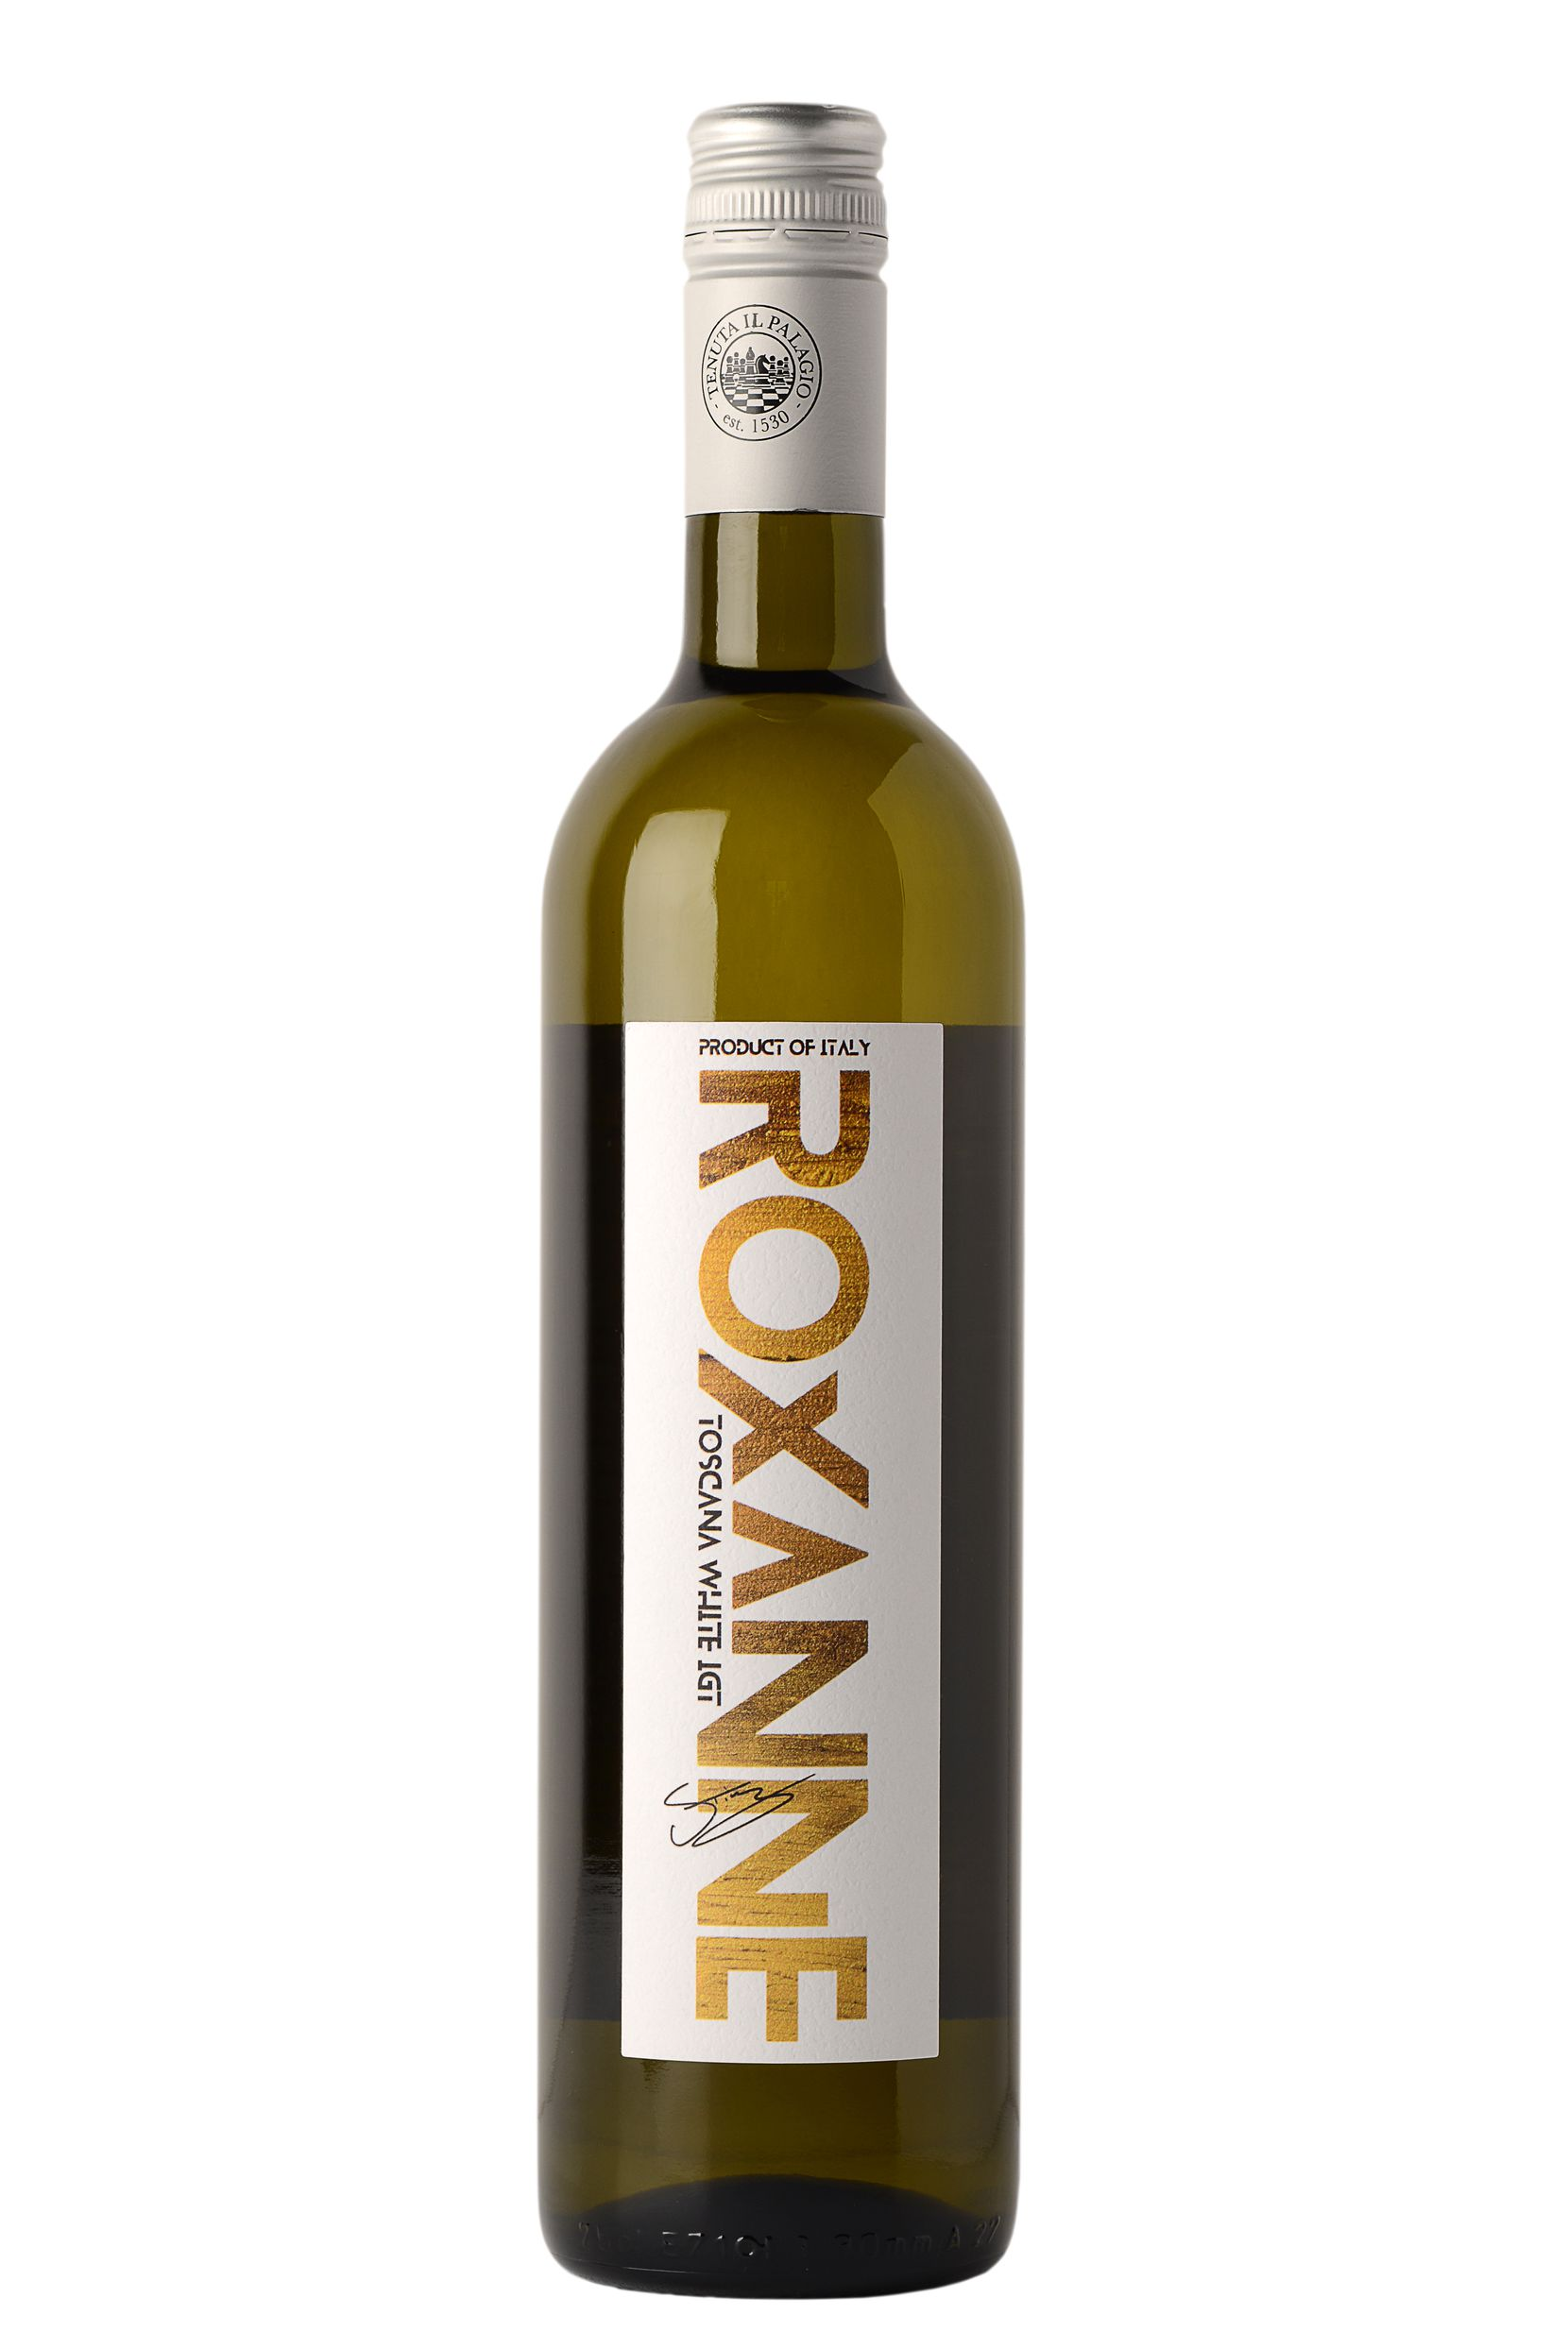 Il Palagio, Bianco Toscano IGT, Roxanne 2018 ($15) is delightful with fresh, zippy green apple, pear, citrus flavors.